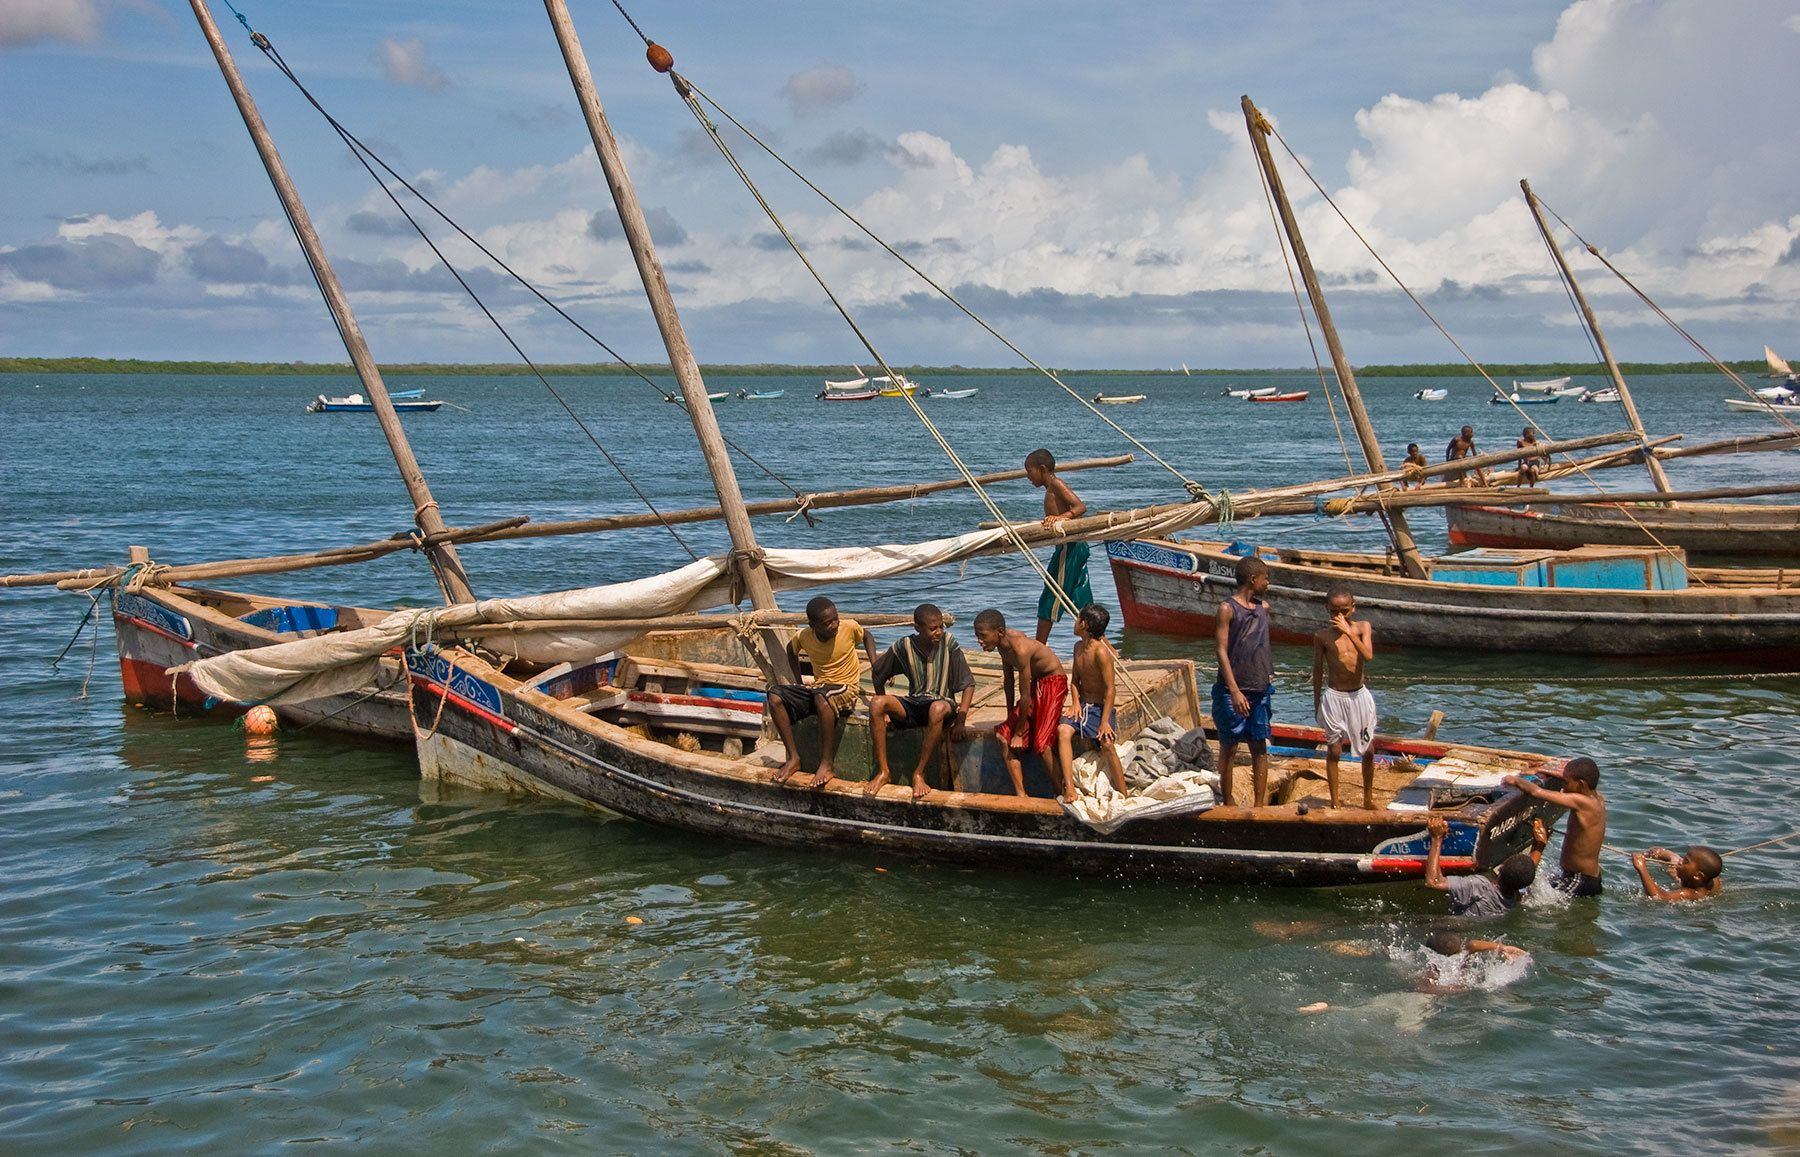 Boys playing, Lamu Island, Indian Ocean